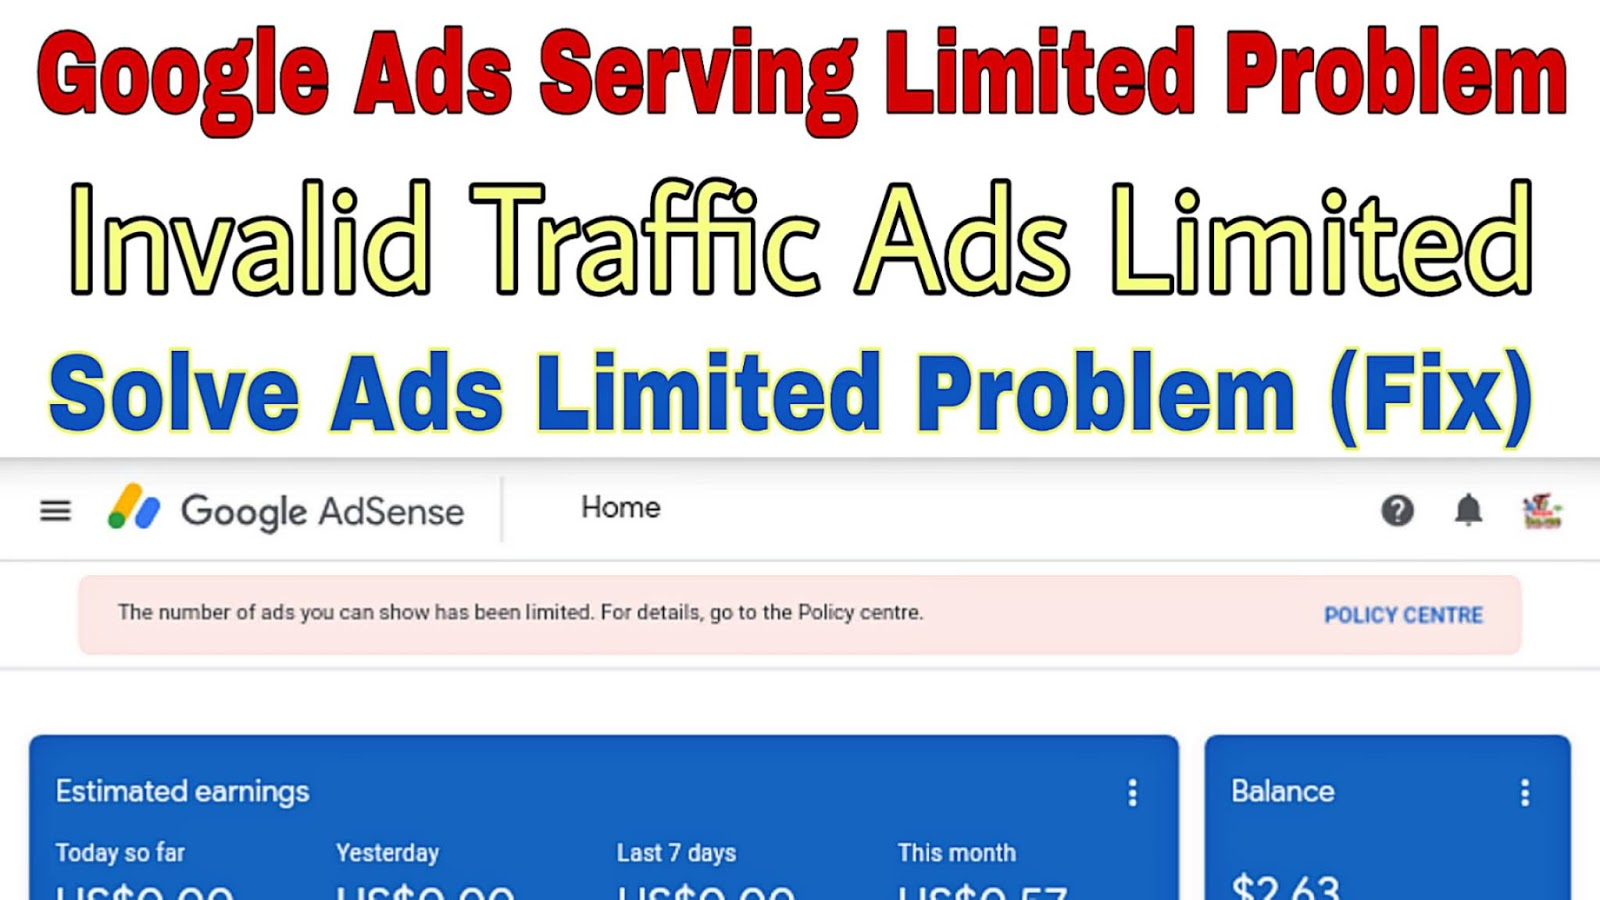 Google Adsense Ad Serving Limit Placed on your AdSense Account | Invalid Traffic Ad Serving Limited